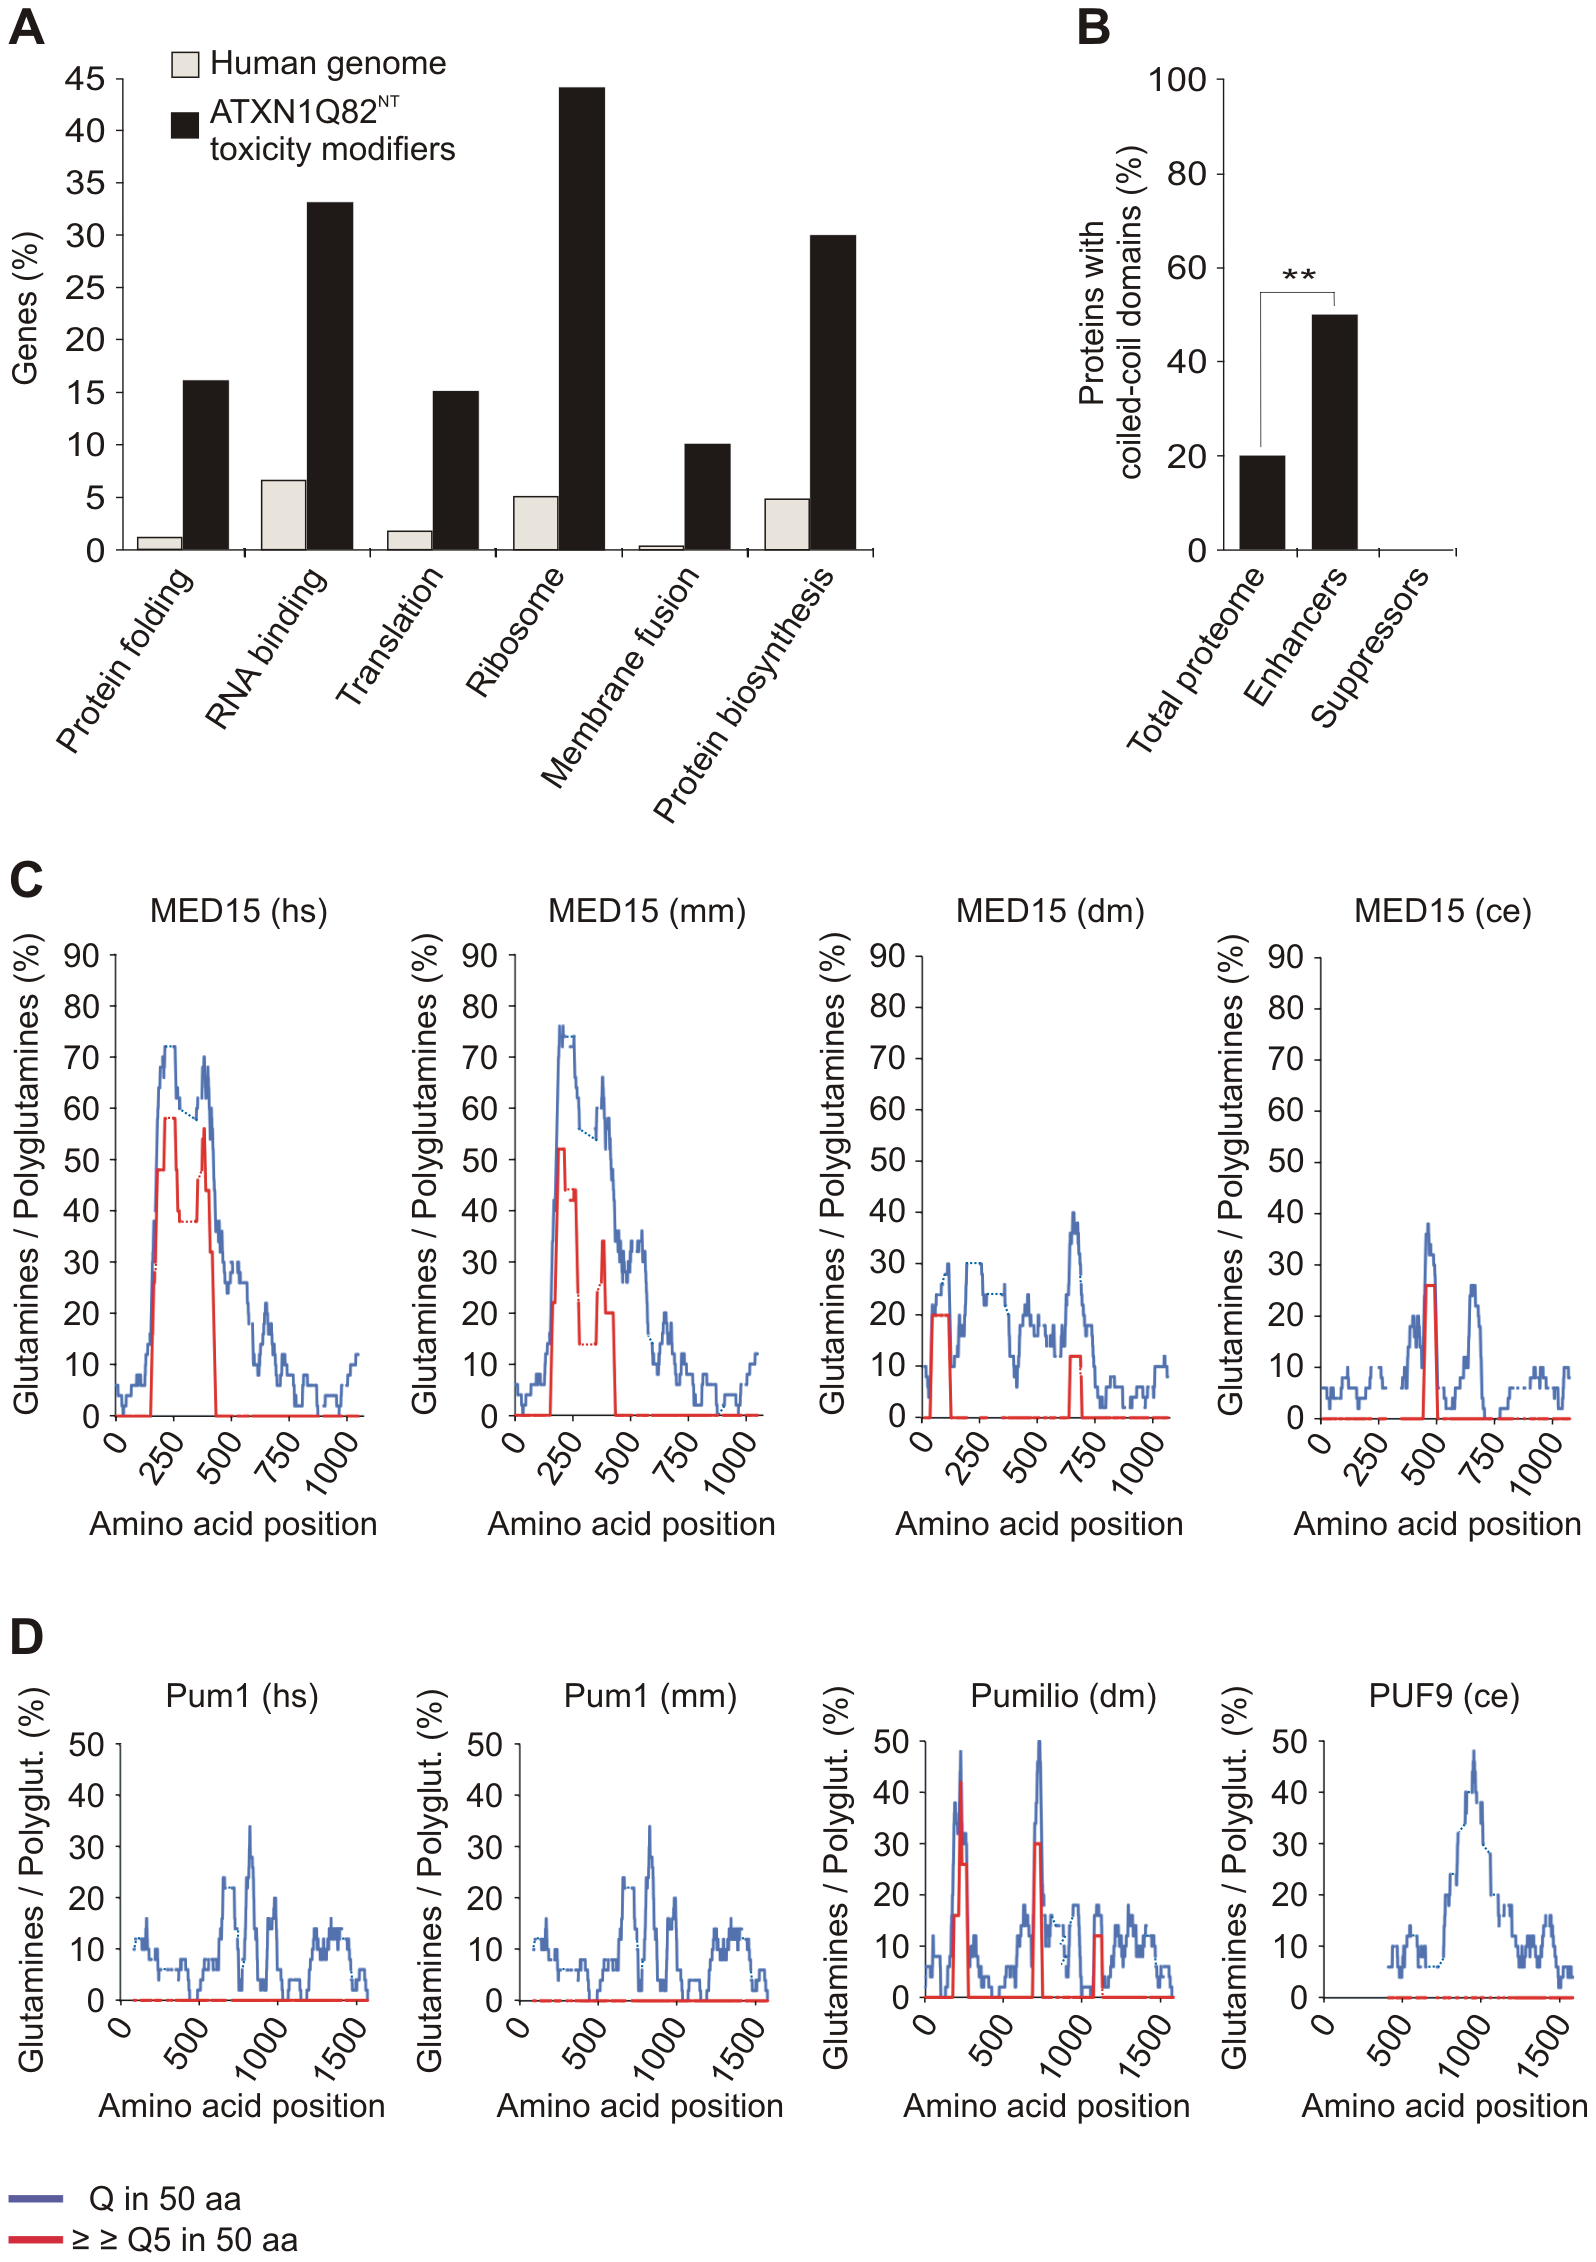 Specific functional categories and structural domains are over-represented among YFP-ATXN1Q82<sup>NT</sup> toxicity modifiers.